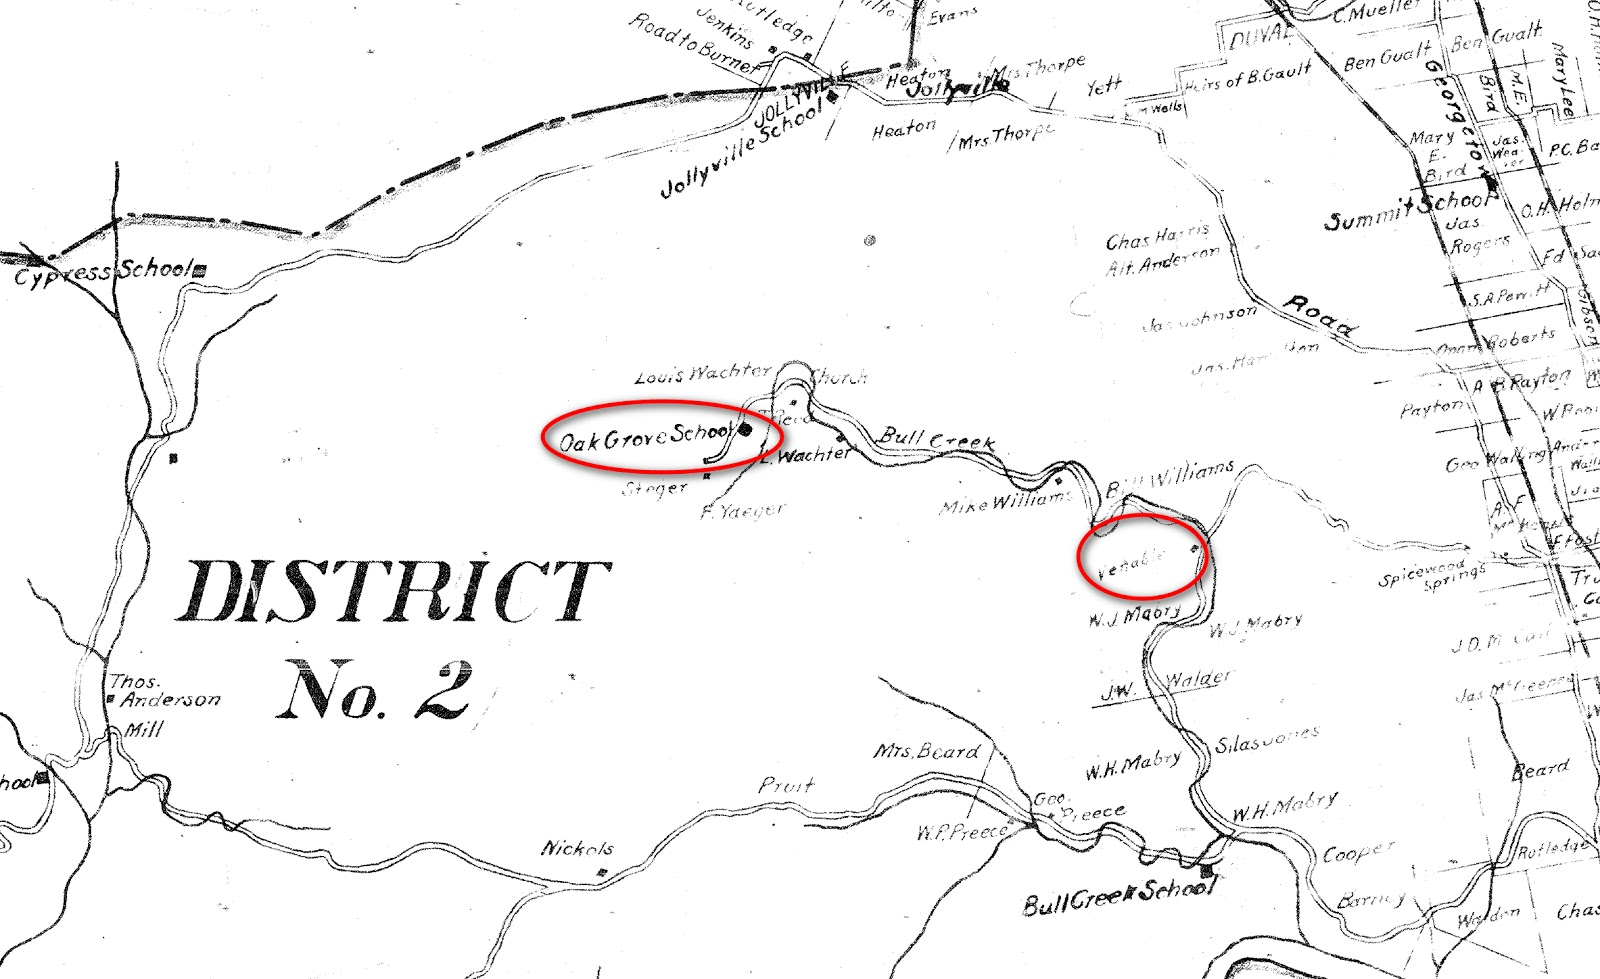 1898 1902 map of travis county roads shows original oak grove school on what is now old lampasas trail was then bull creek rd and the venable homestead